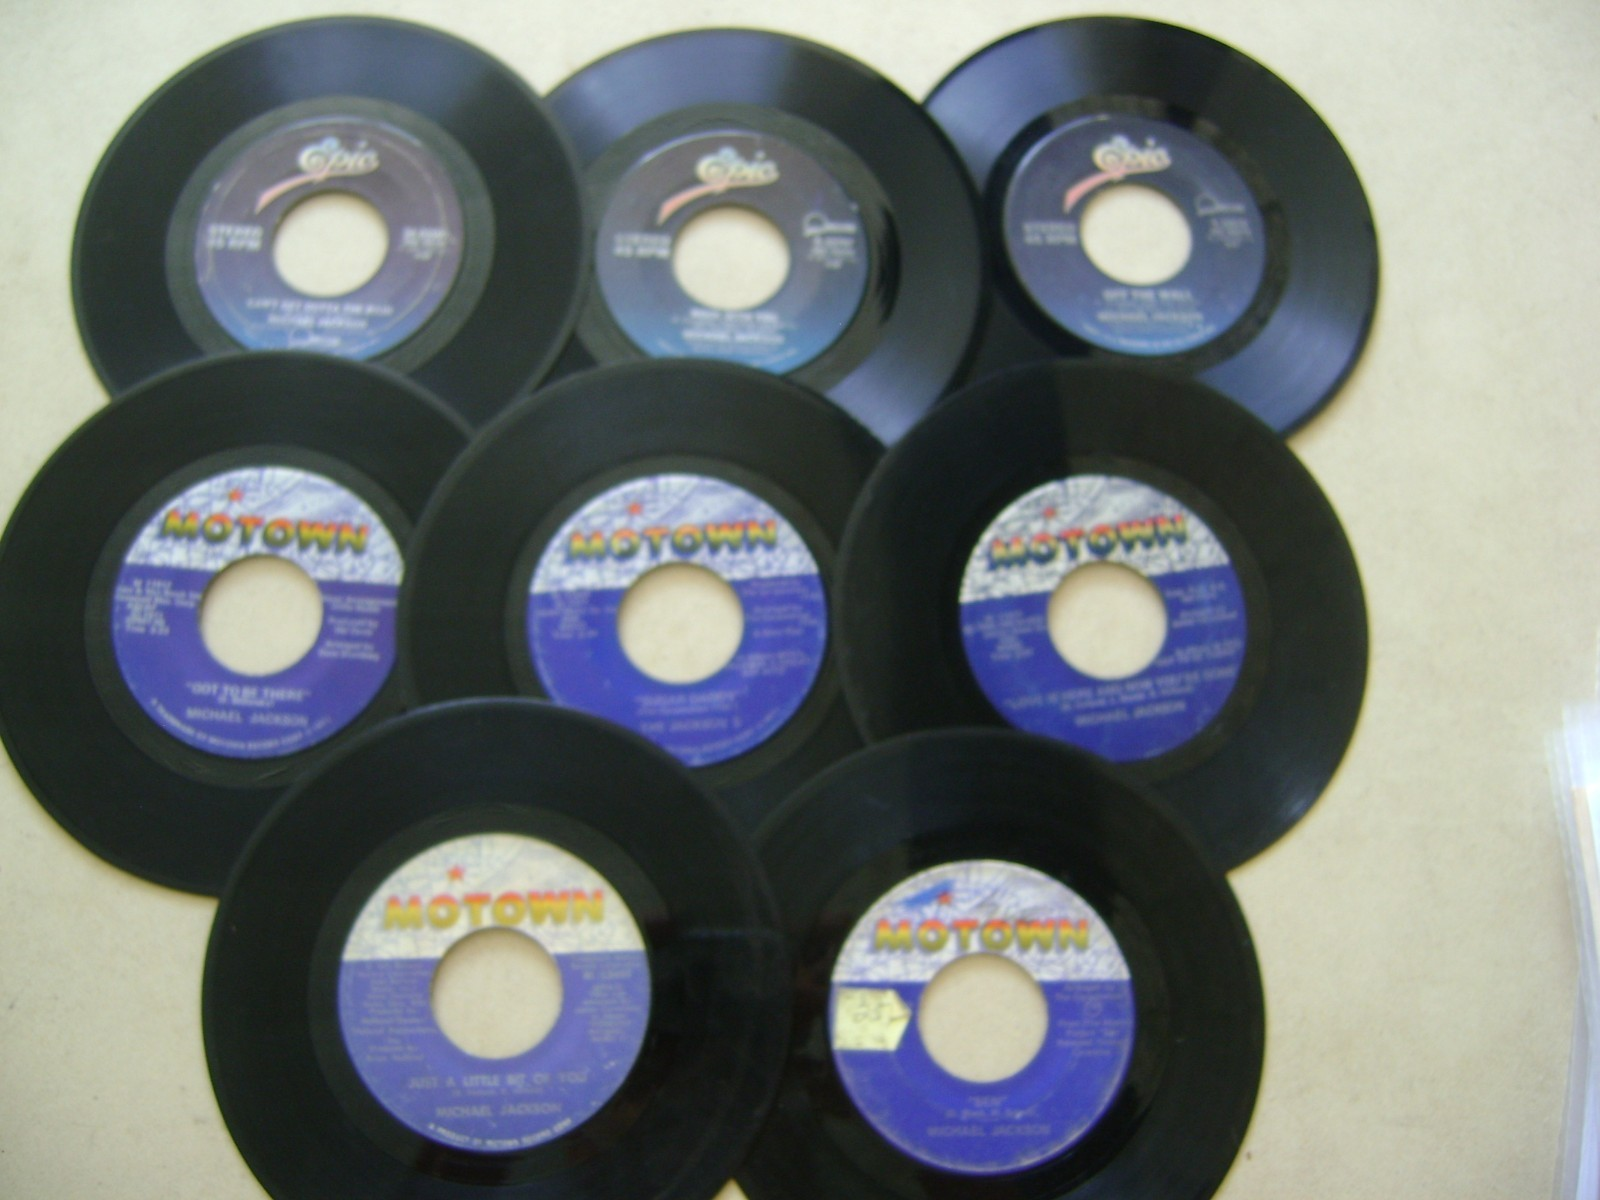 Michael's Assortment Of Hit Songs On 45RPM